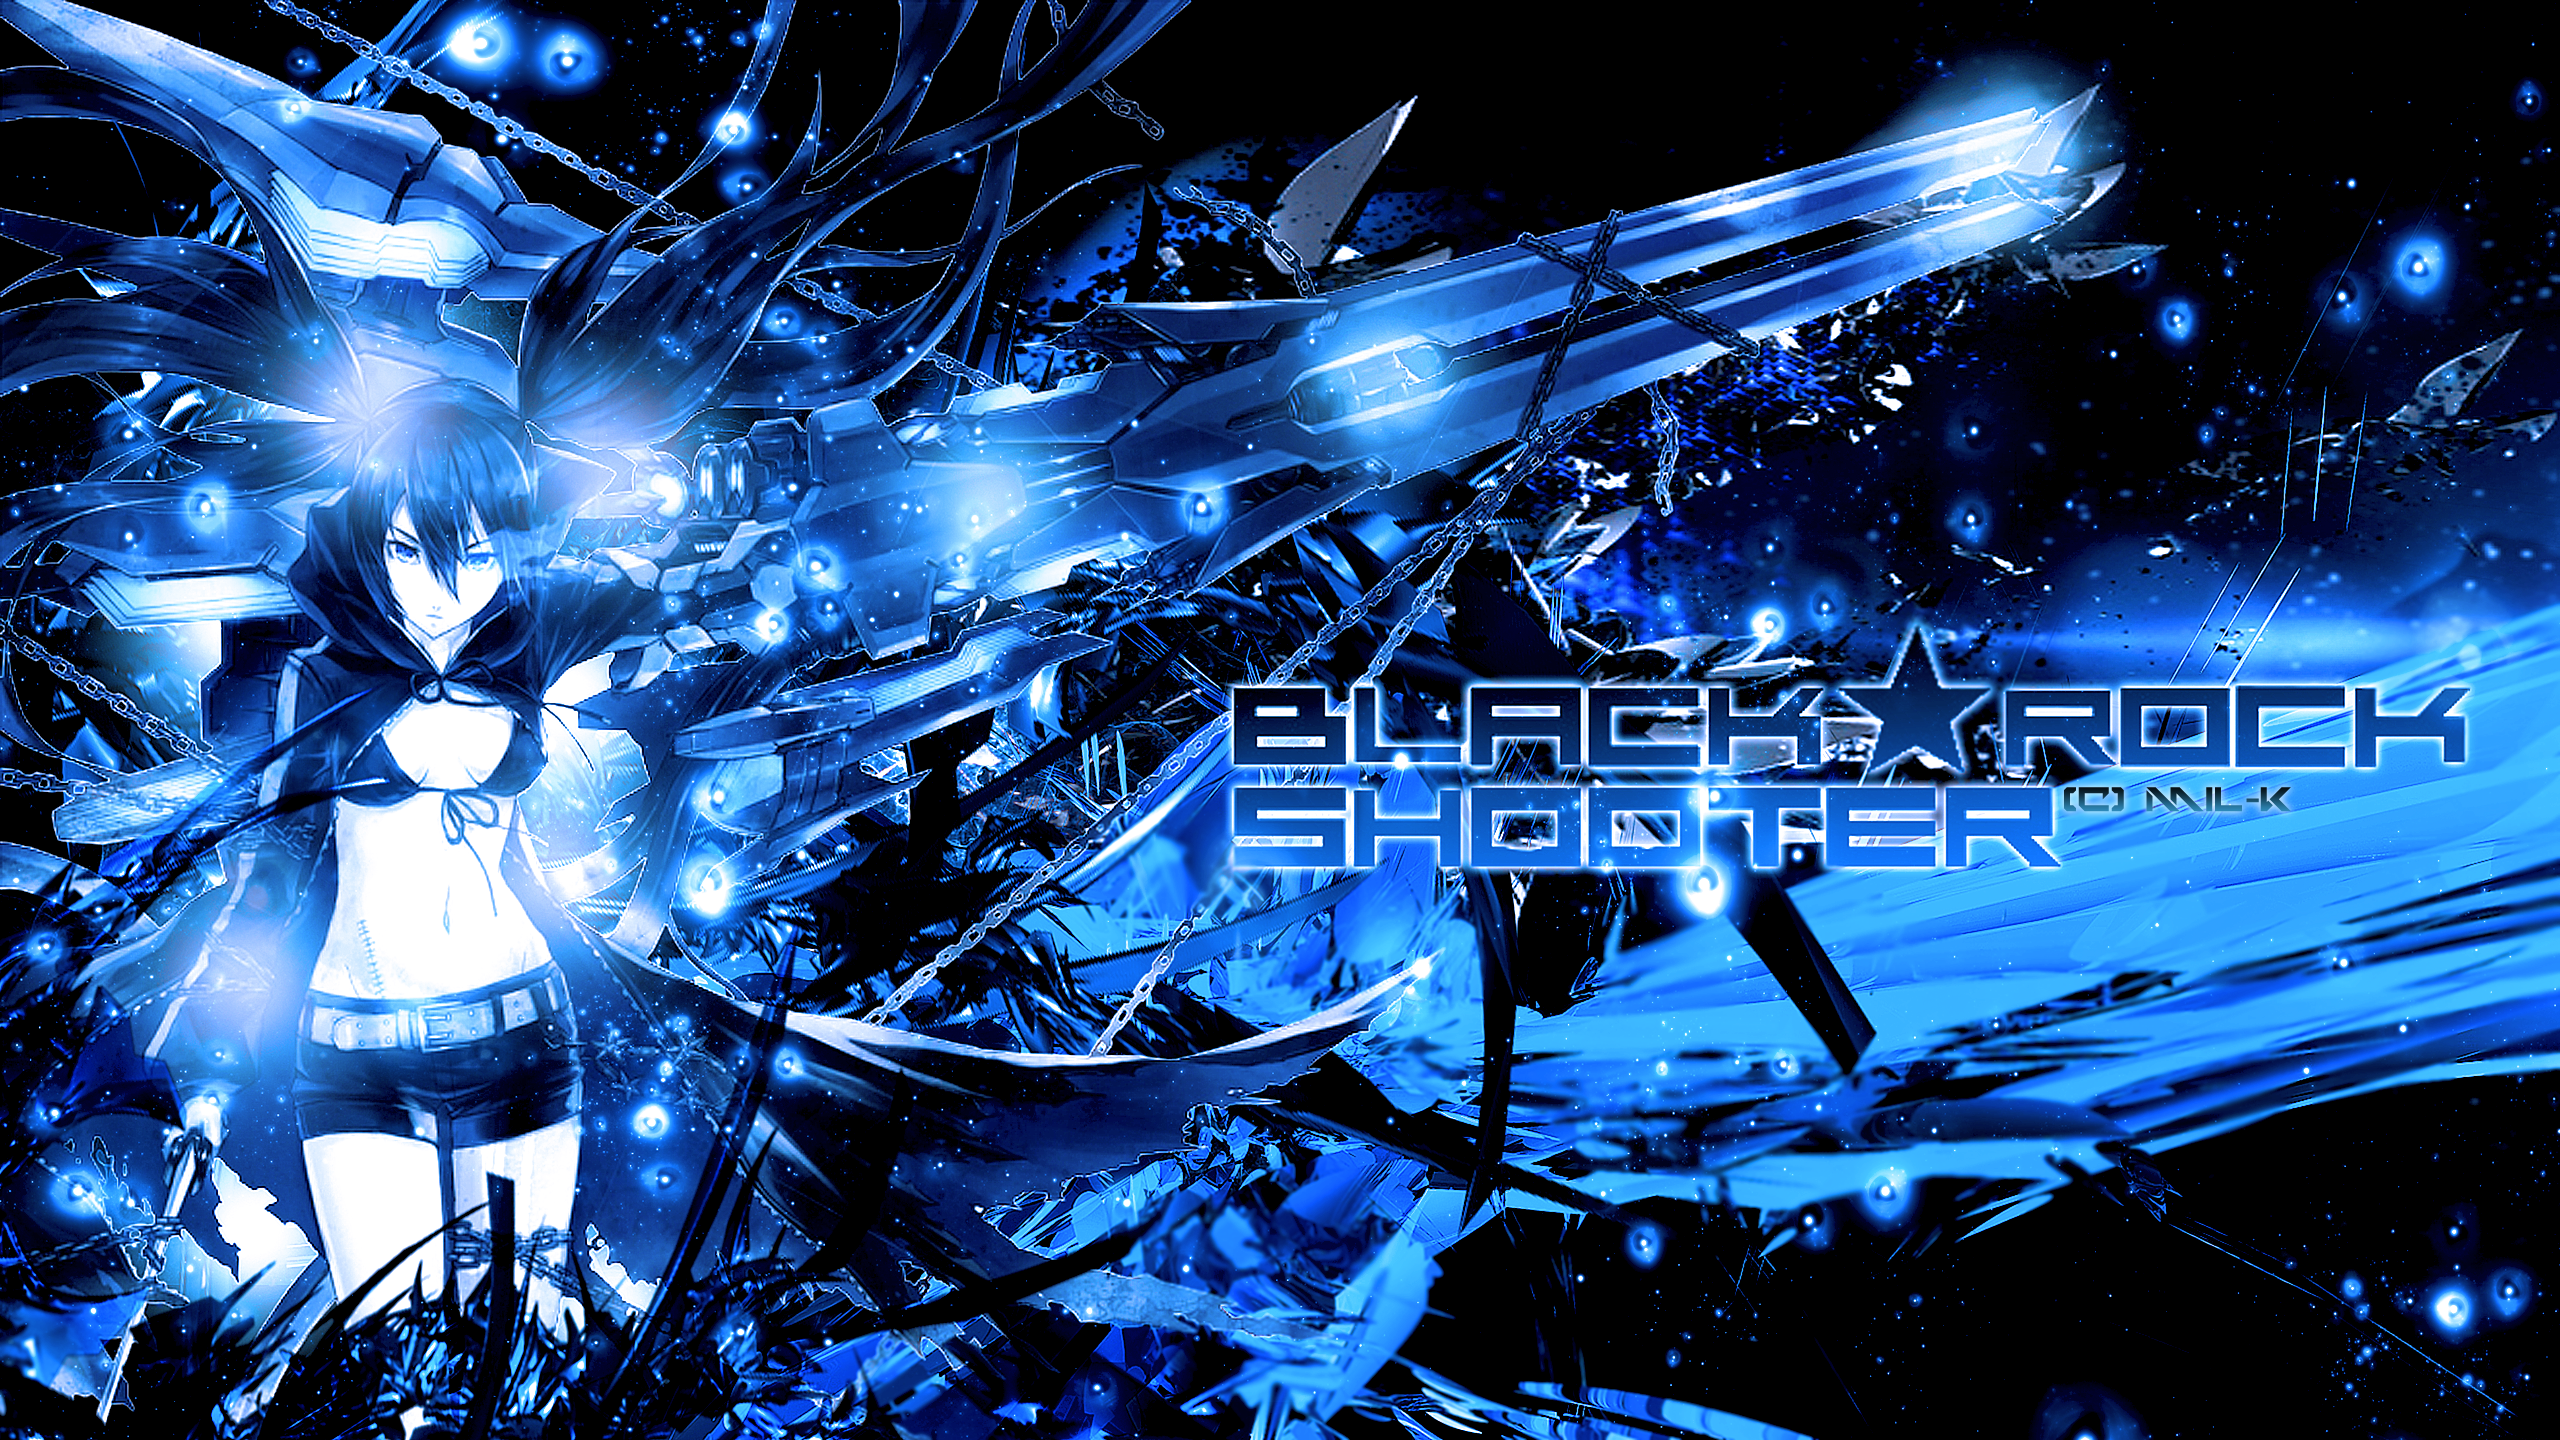 black rock shooter wallpapermoniique-x-x on deviantart